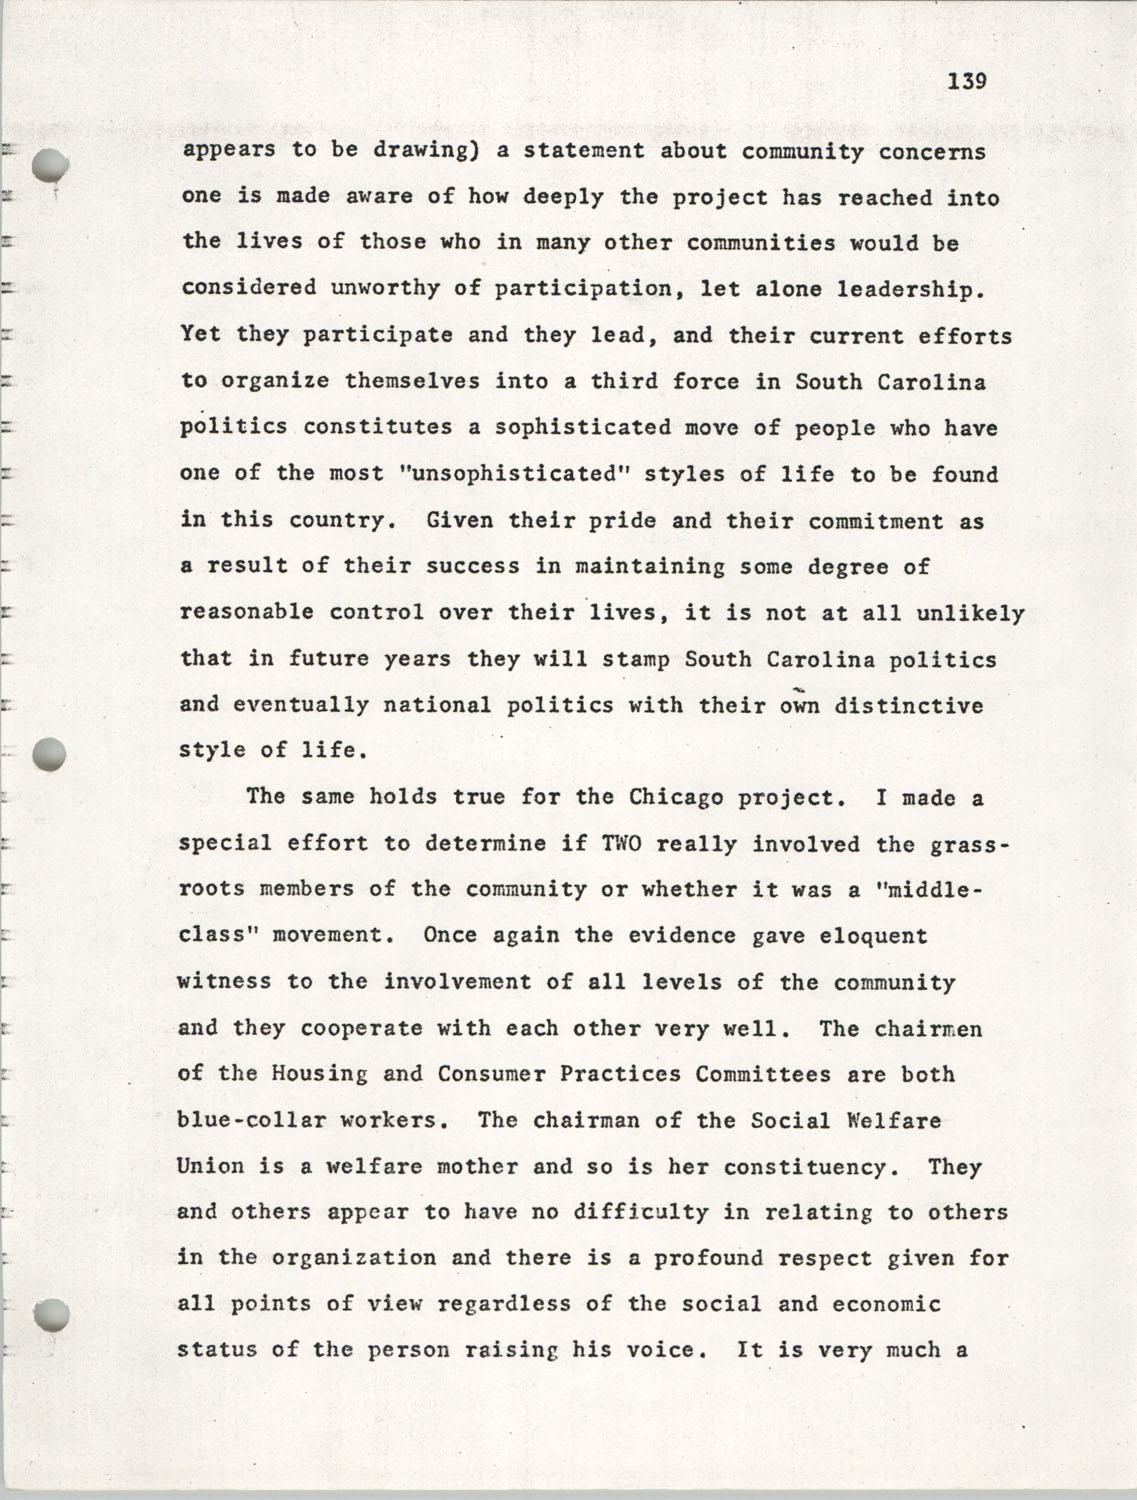 Citizen Participation. Democracy and Social Change, December 1, 1969, Page 139